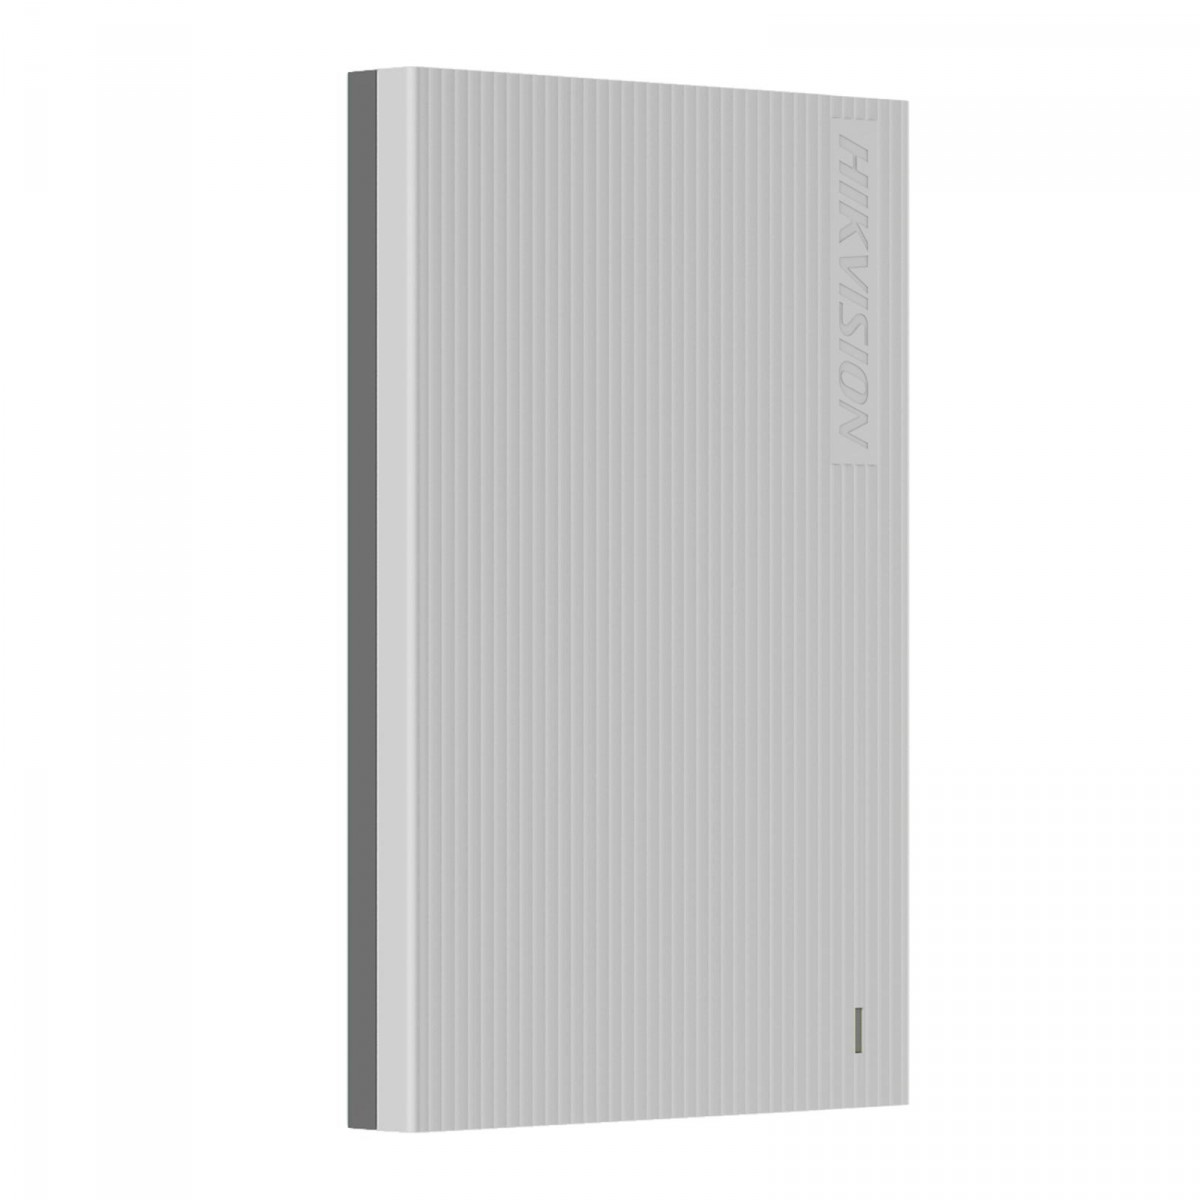 HD Externo Hikvision T30,1TB, USB 3.0, Gray, HS-EHDD-T30-1T-GRAY